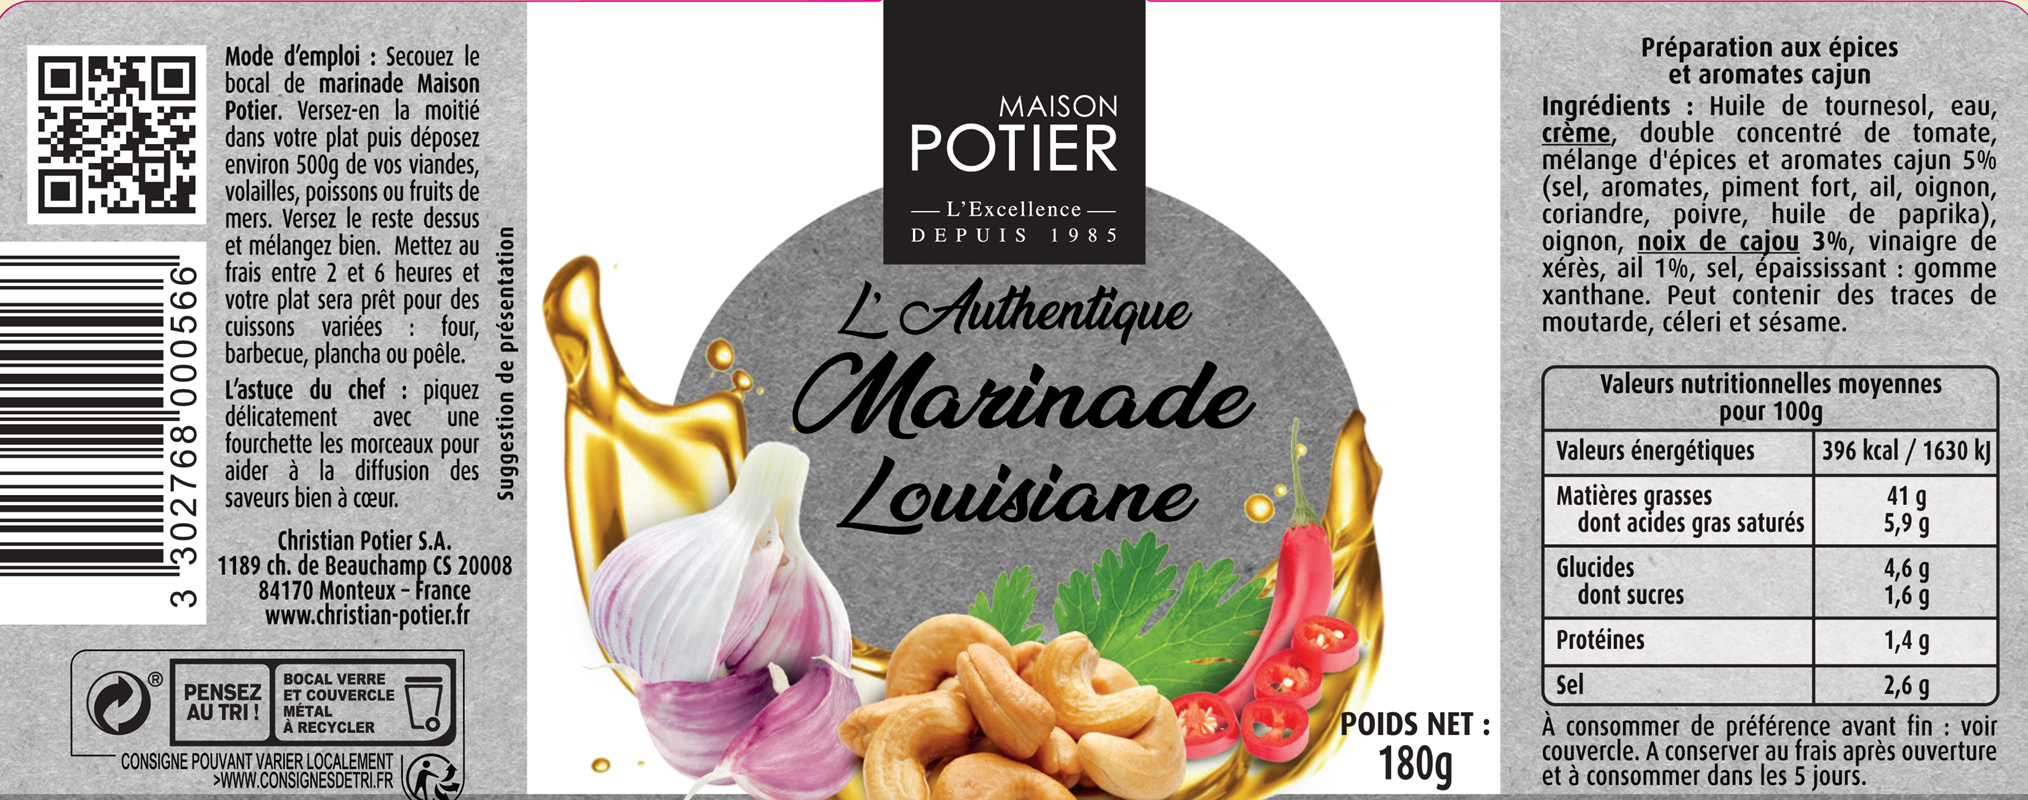 bocaux marinade louisiane